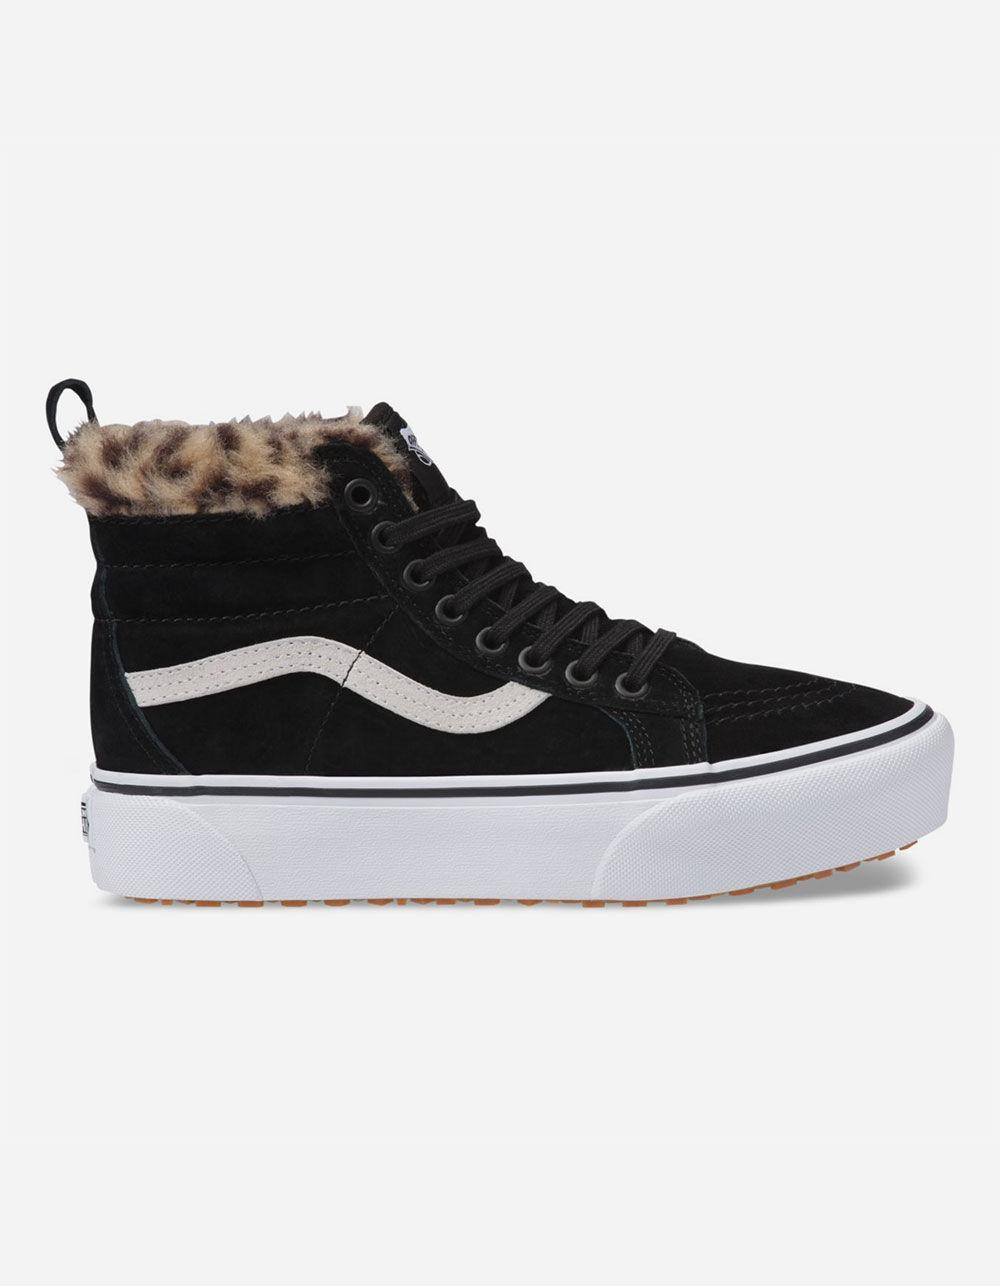 Fur Womens Sk8 Hi Platform Mte Black Leopard Fur Womens Shoes